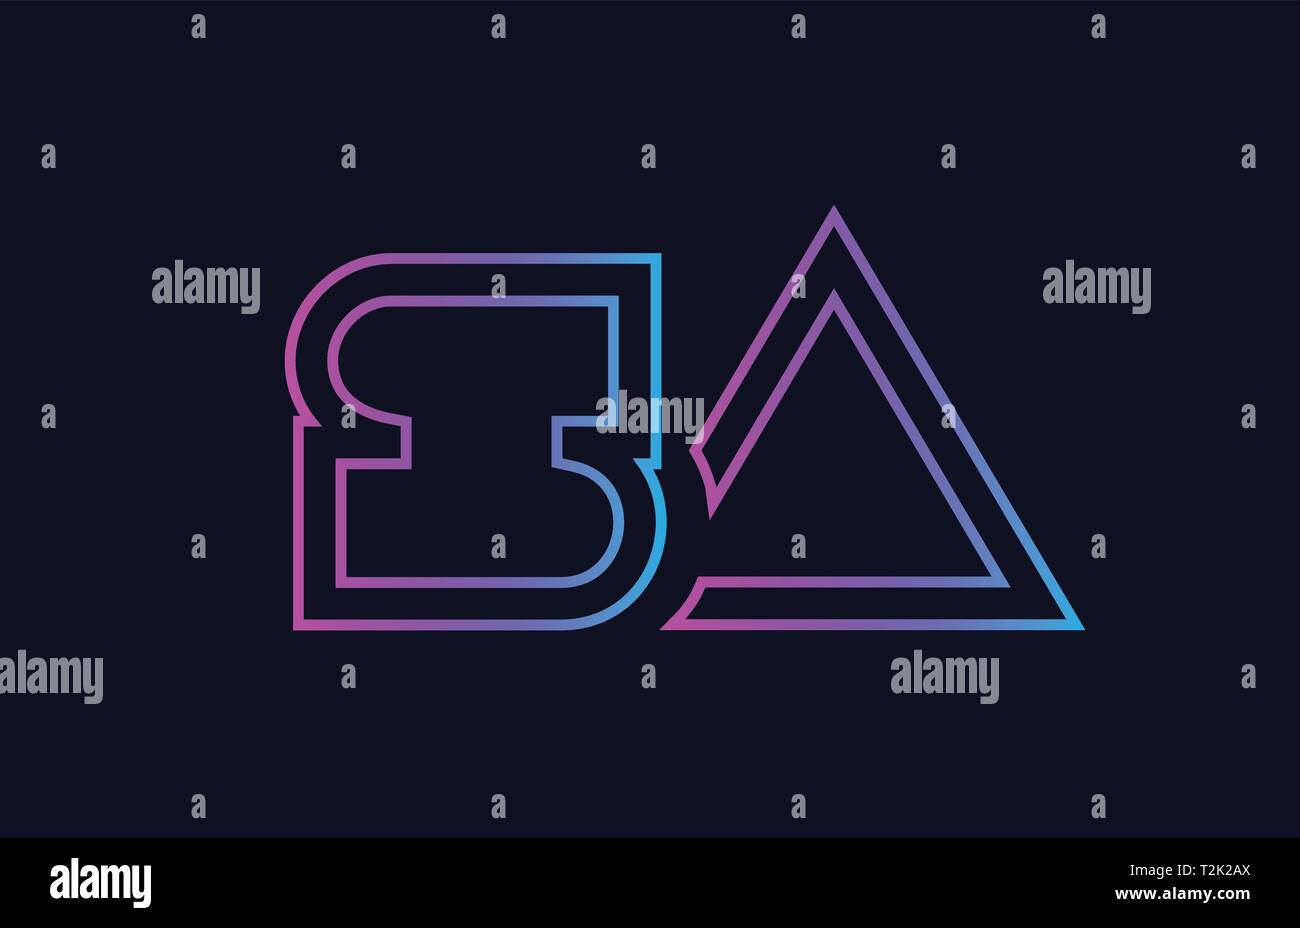 blue pink alphabet letter logo combination sa s a design suitable for a company or business - Stock Vector